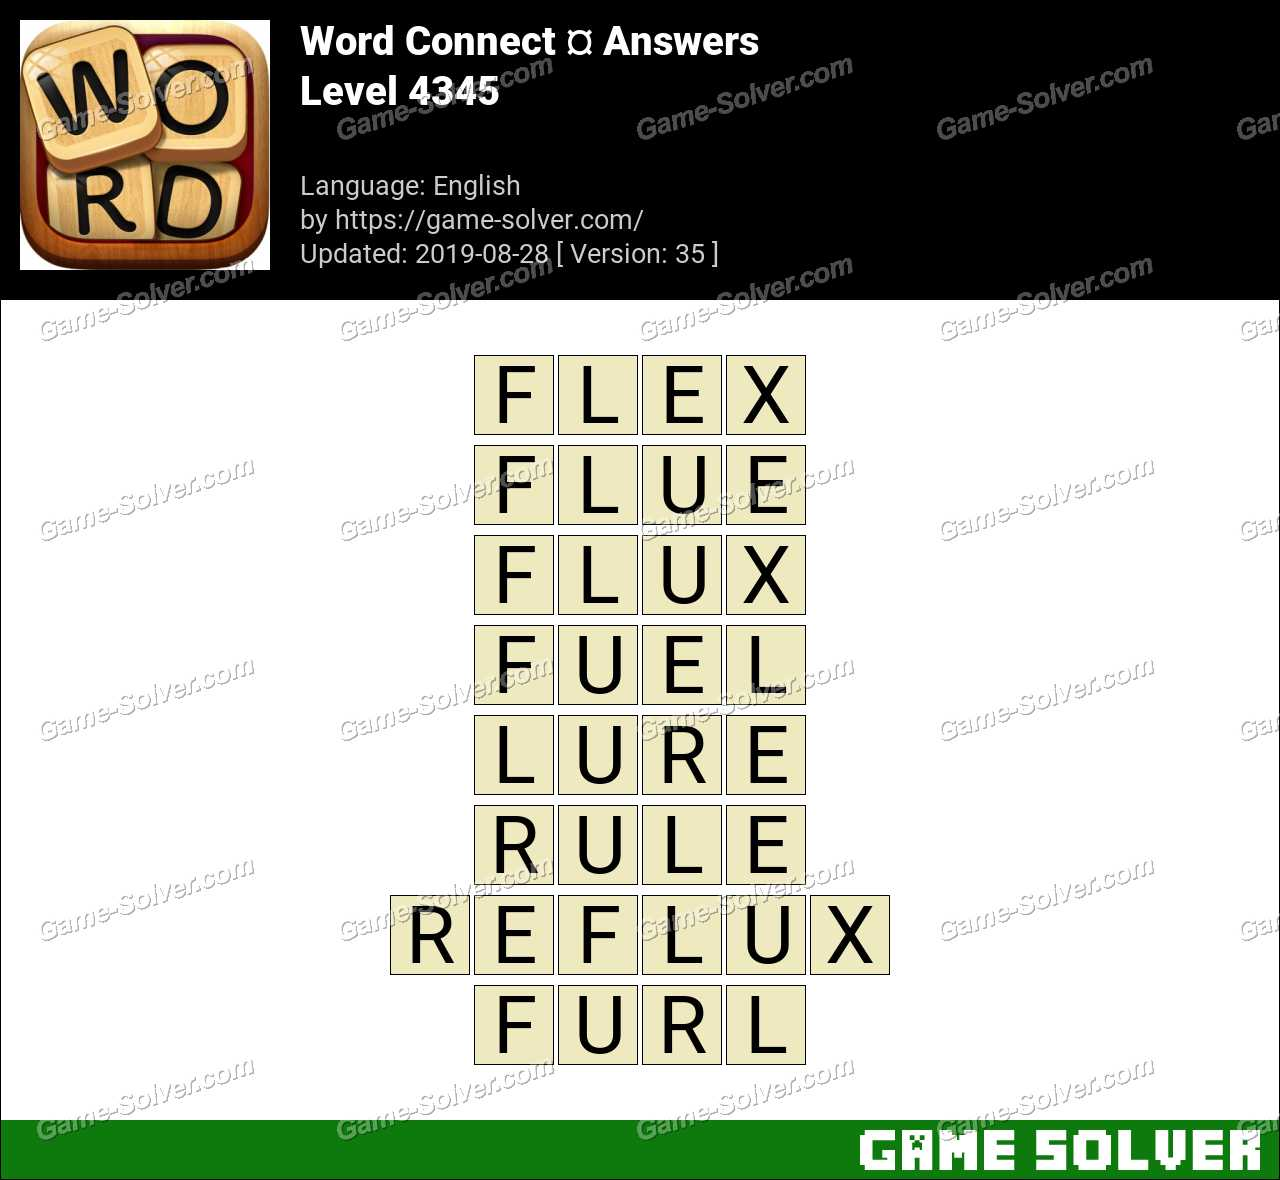 Word Connect Level 4345 Answers